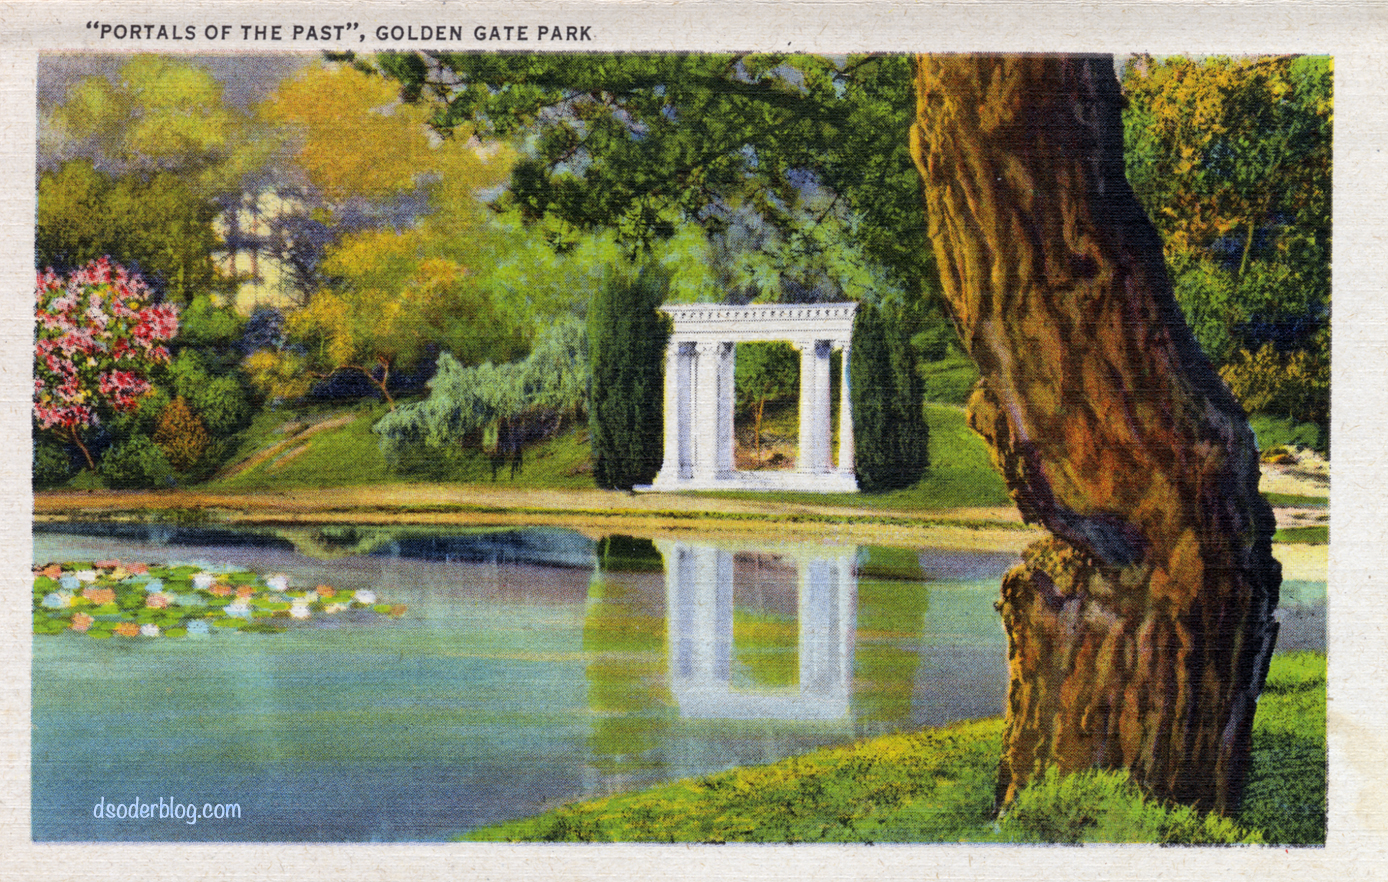 Golden Gate Park Portals of the Past